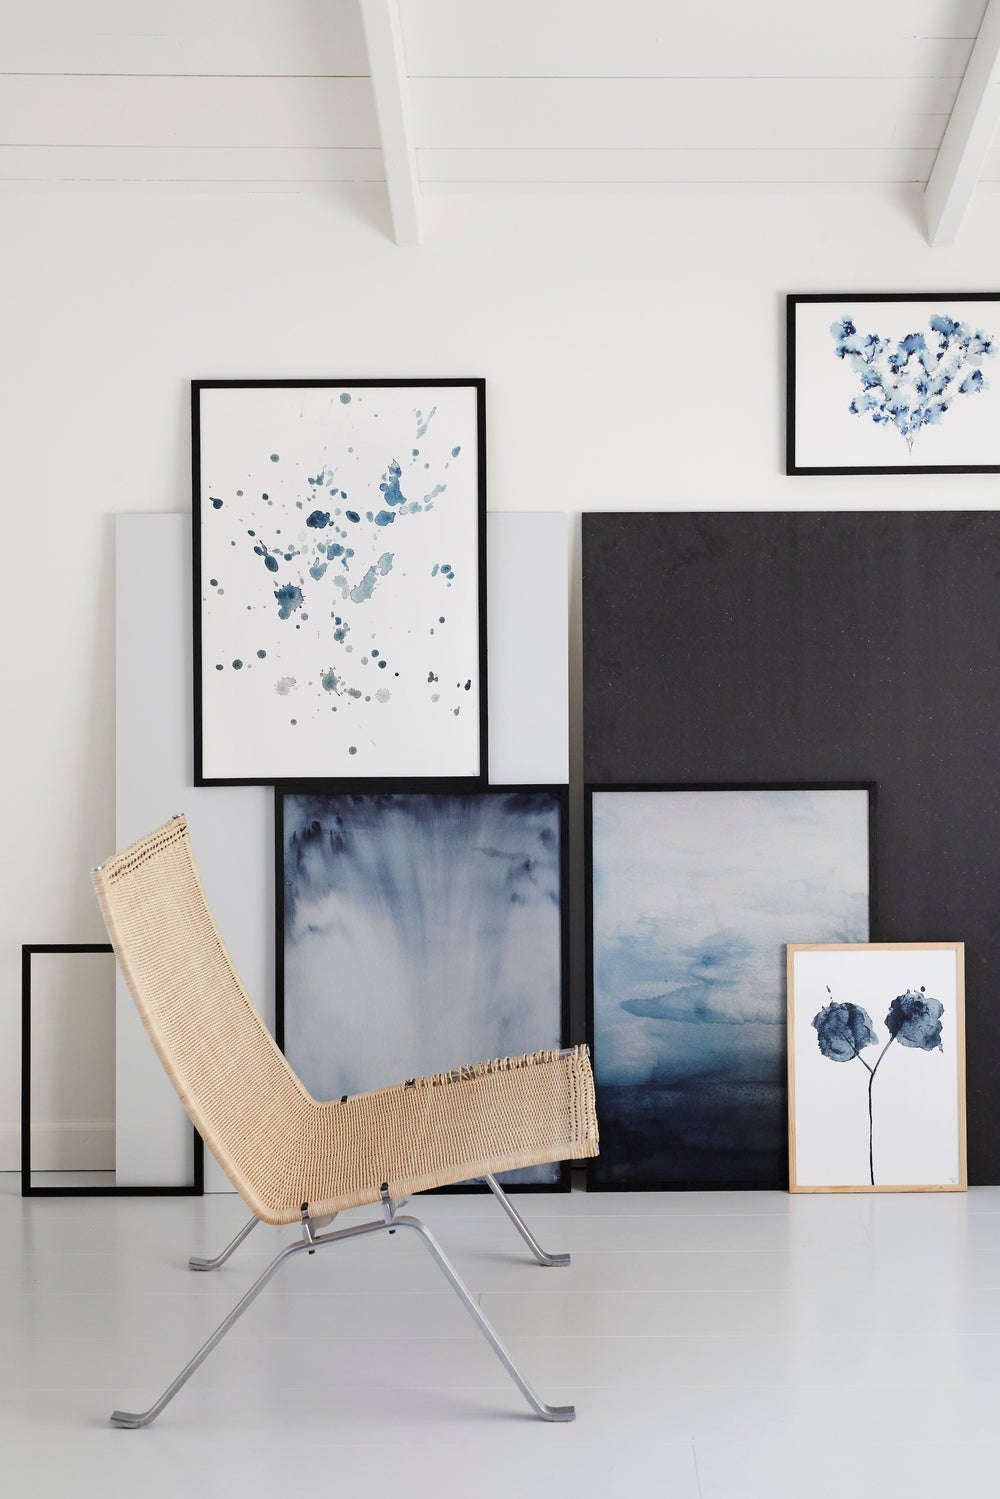 Trine holbaek designs — blue water splash